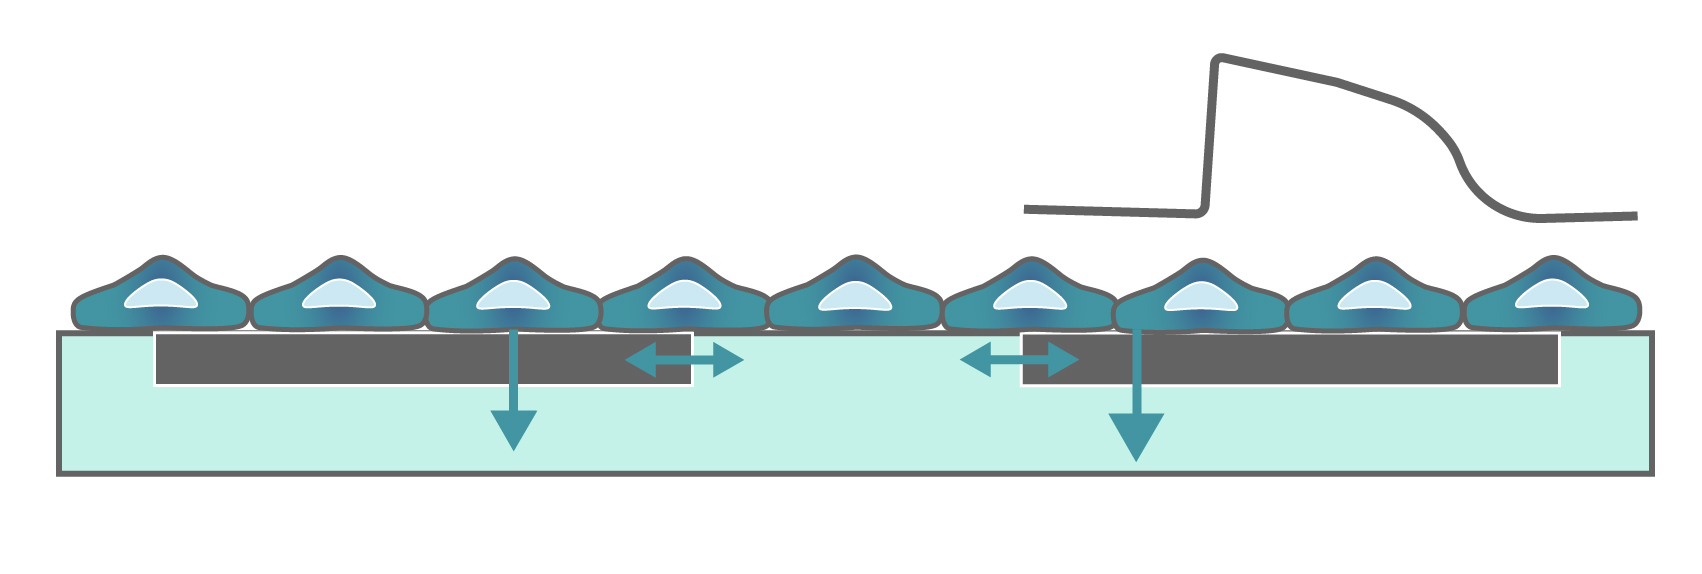 Rendering of cells growing over the electrodes at the bottom of the well